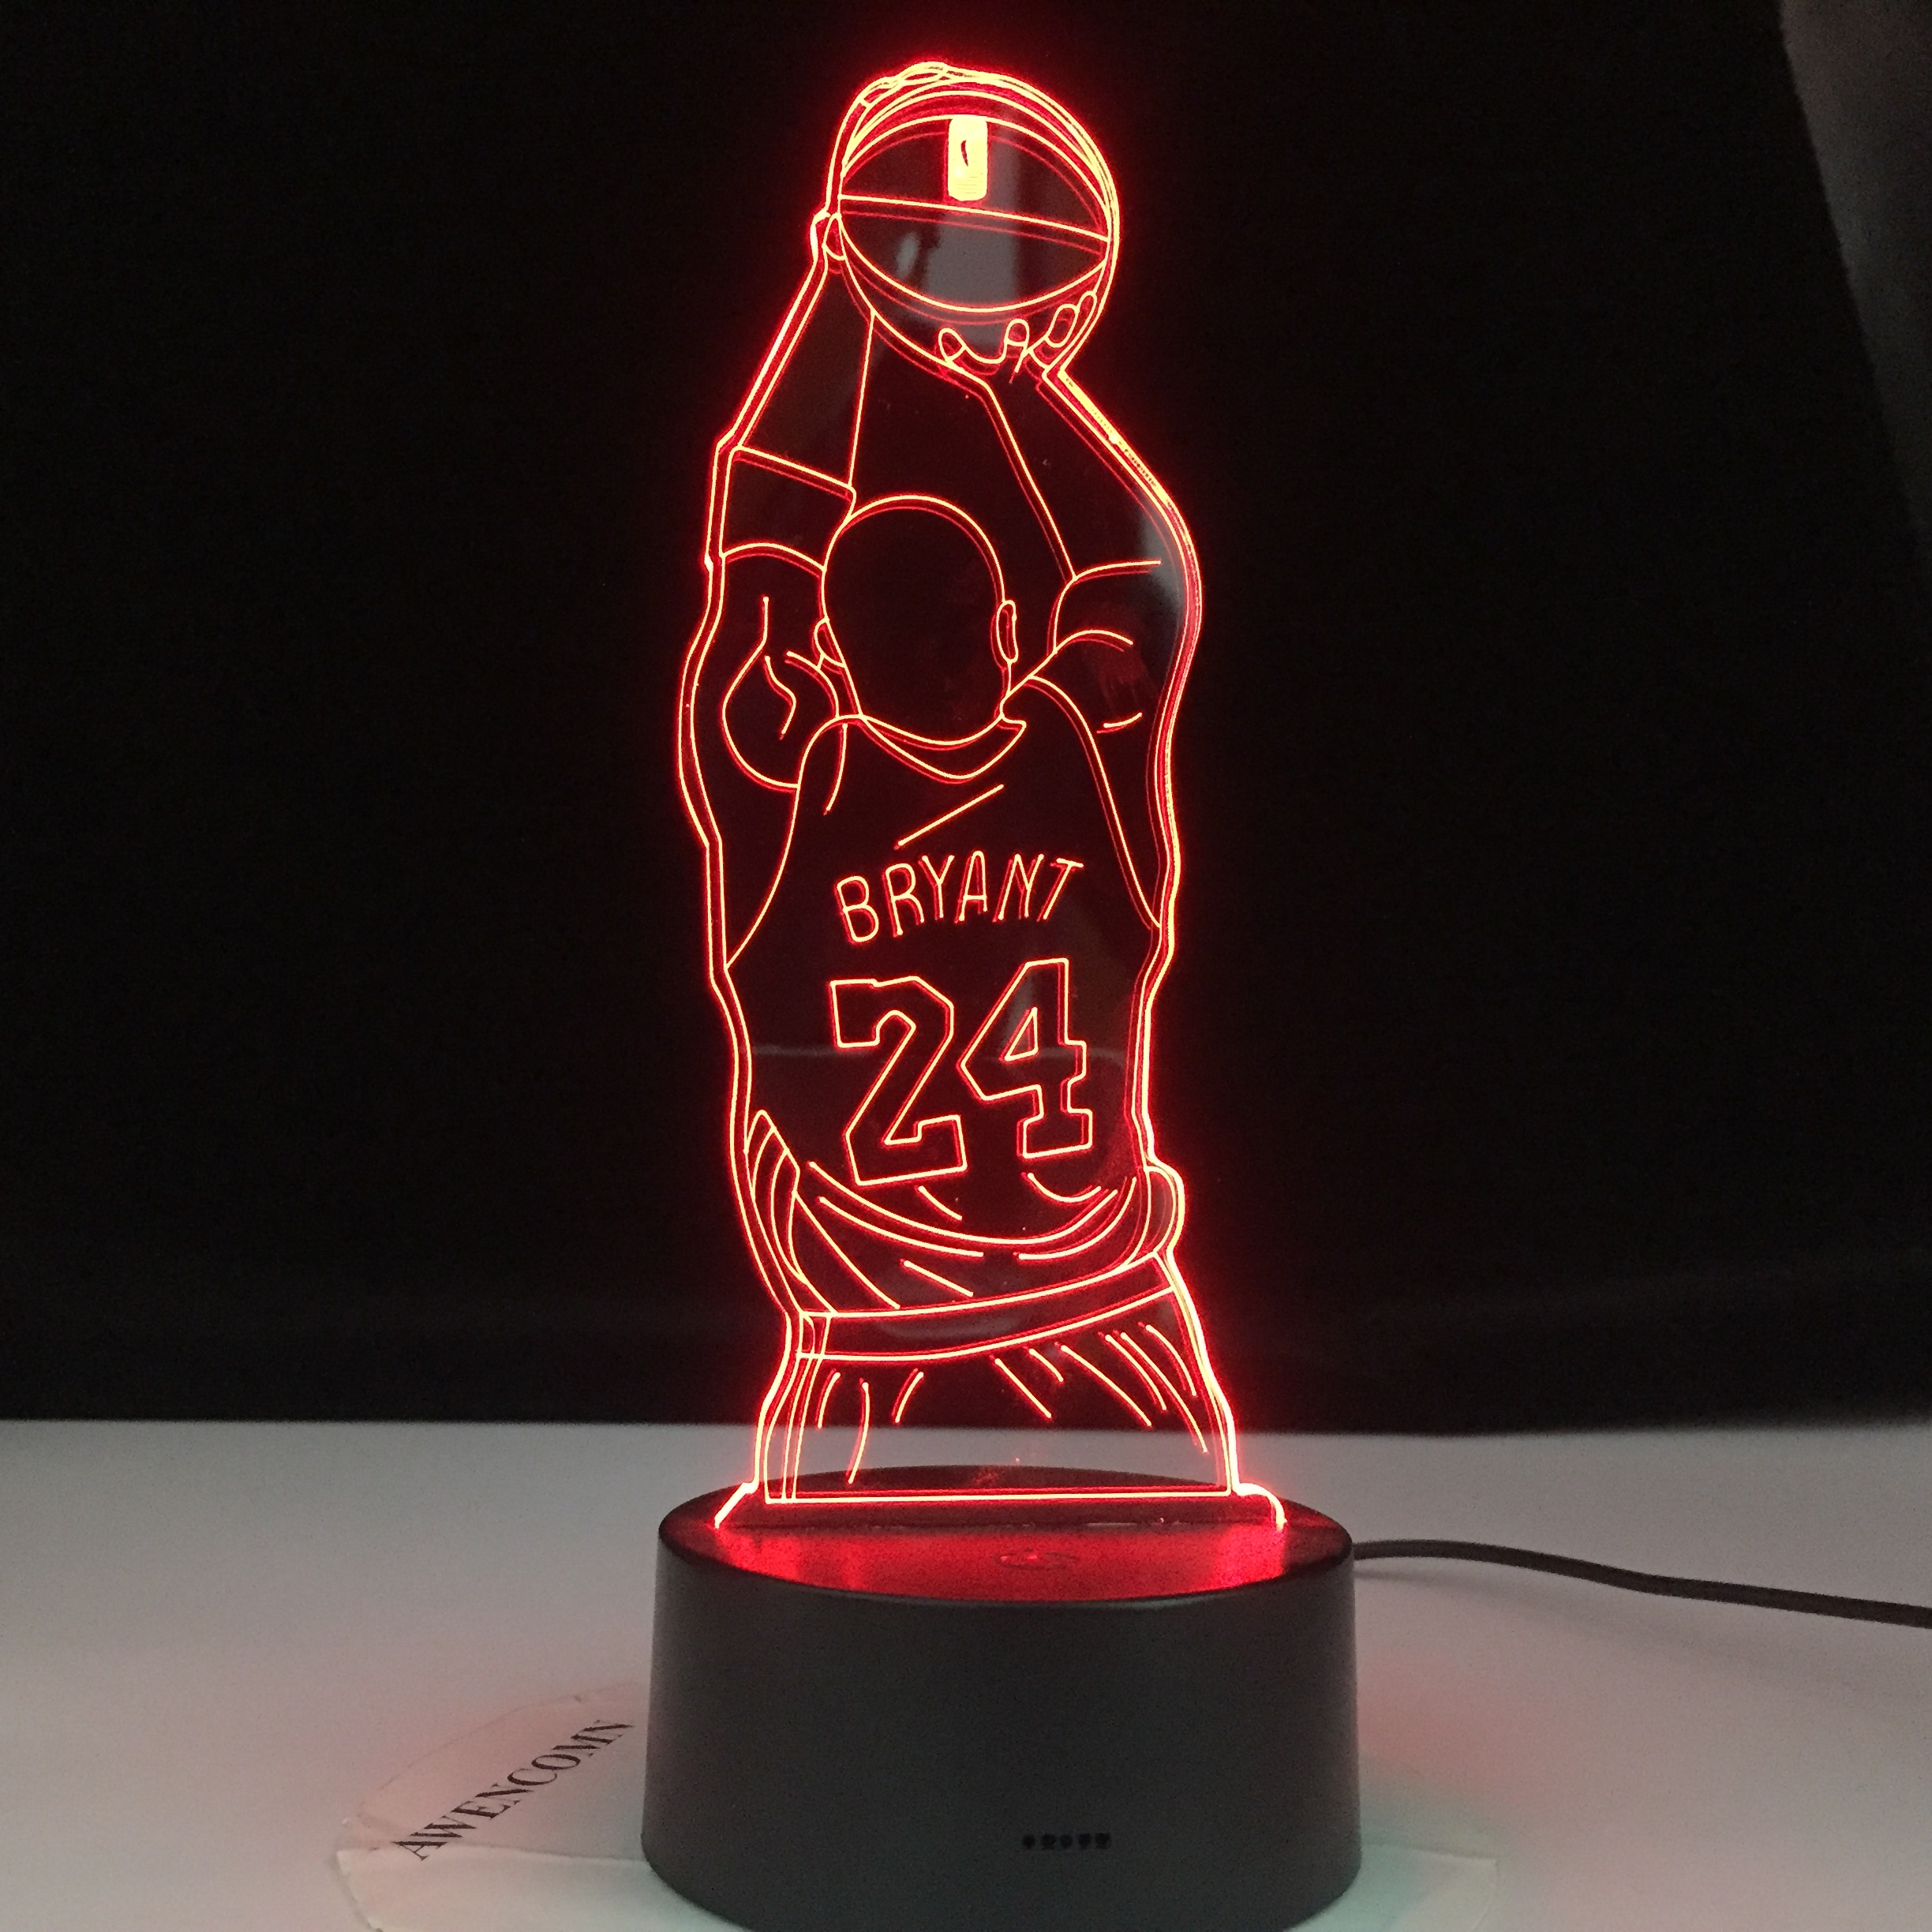 Kobe Jump Shoot Figure Back View Bedroom Decor Nightlight Led Night Light Desk 3d Lamp Dropshipping Kobe Bryant Memorial Gifts